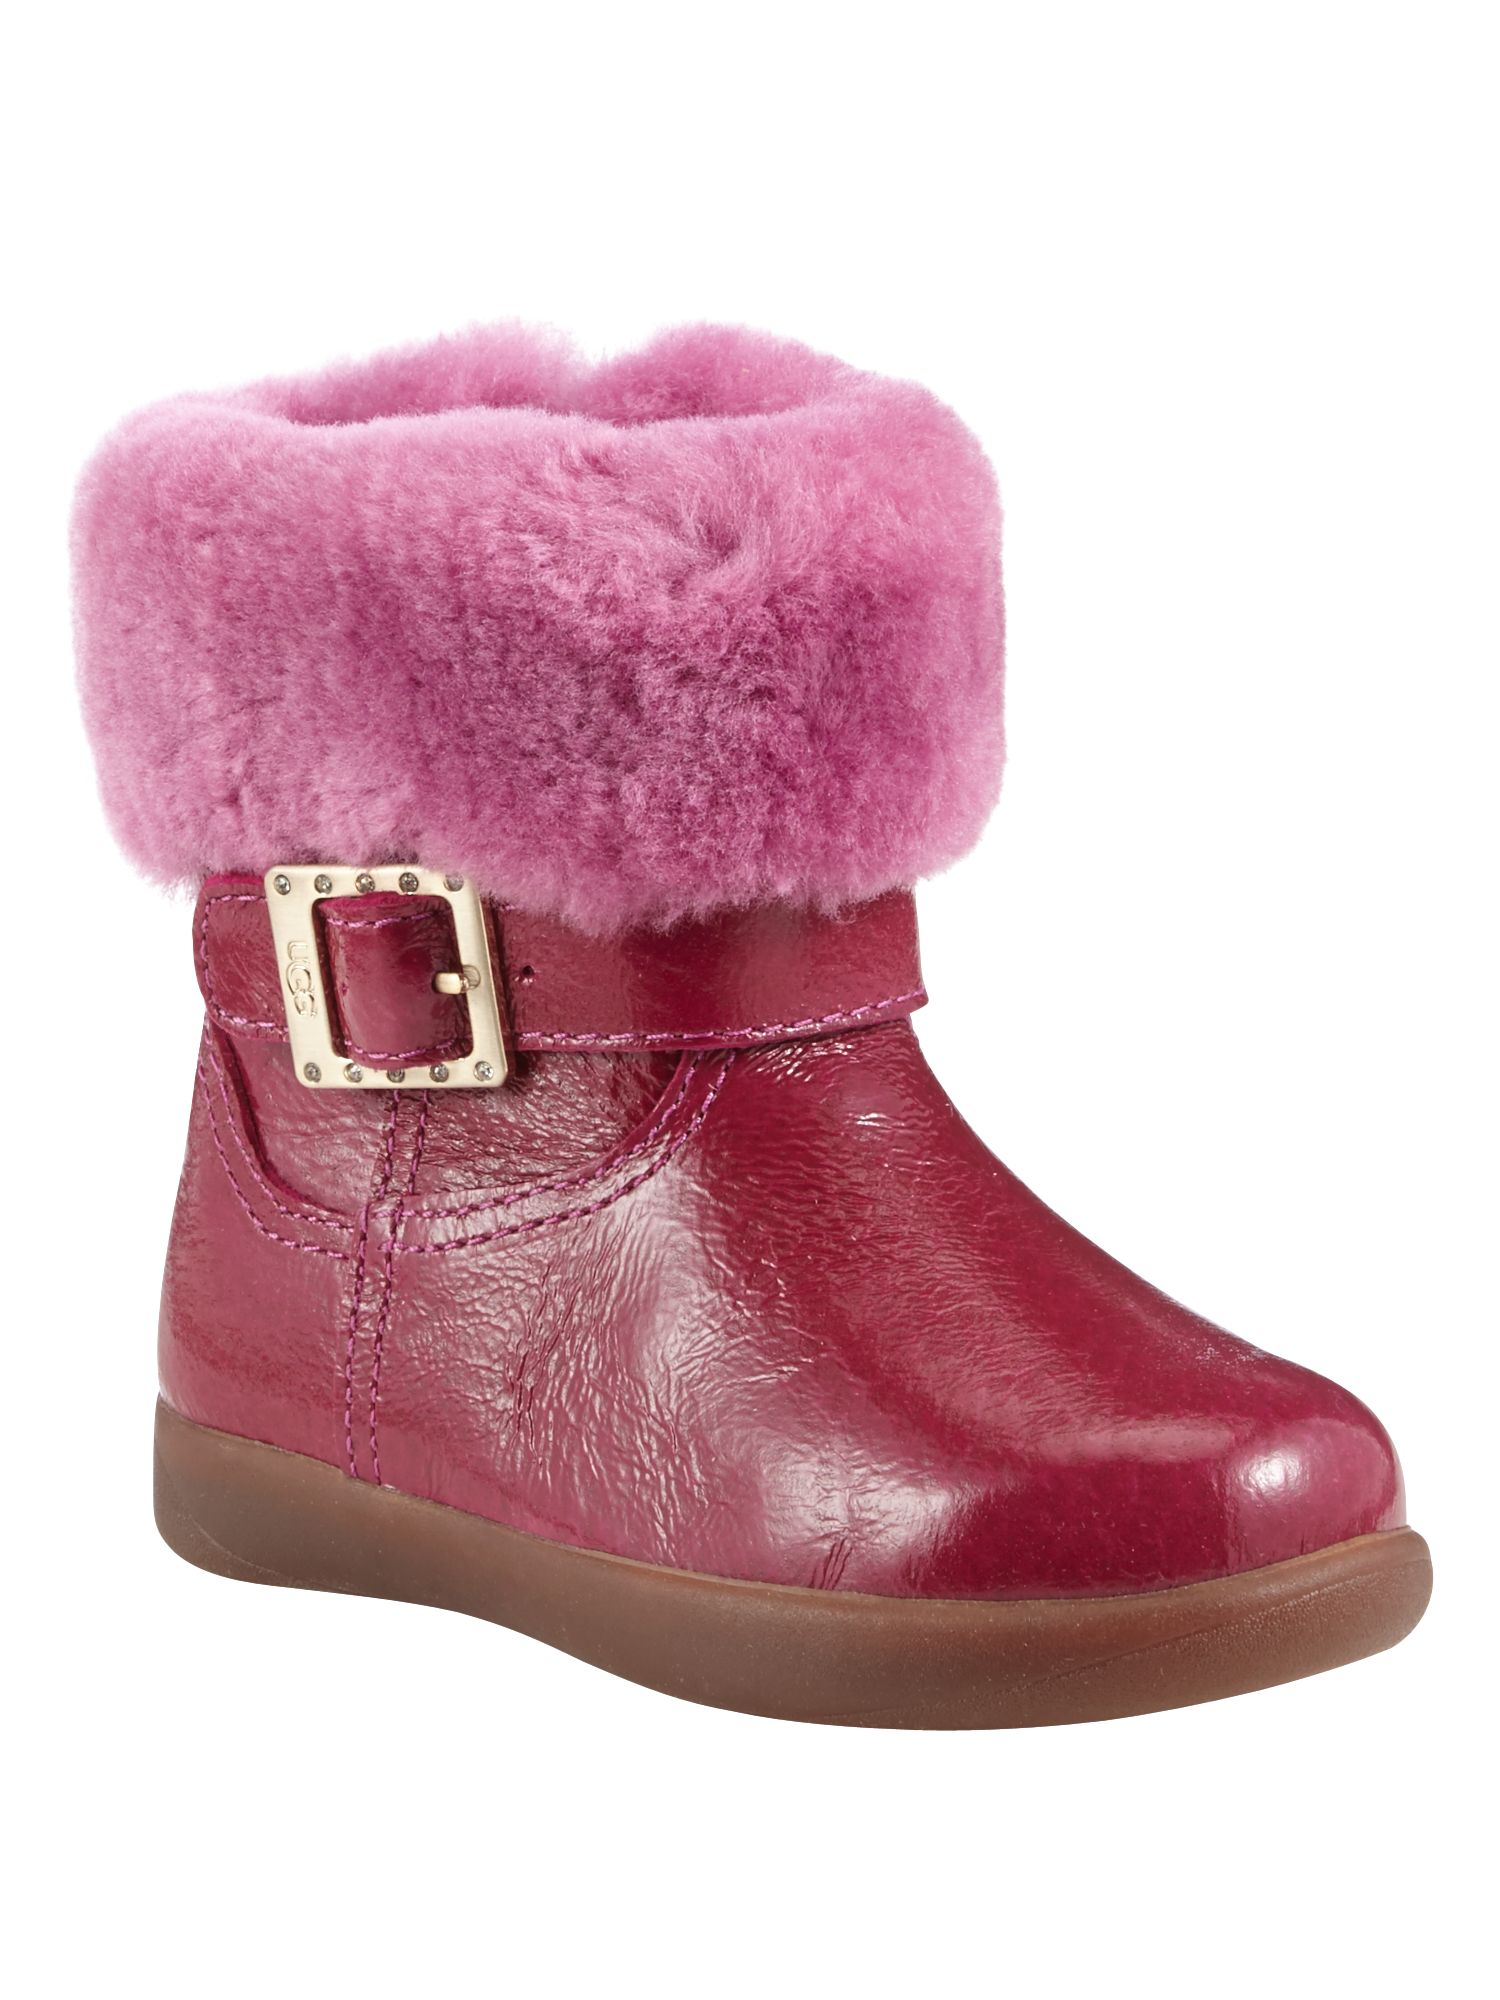 UGG Girls boots with Diamante Buckle Pink